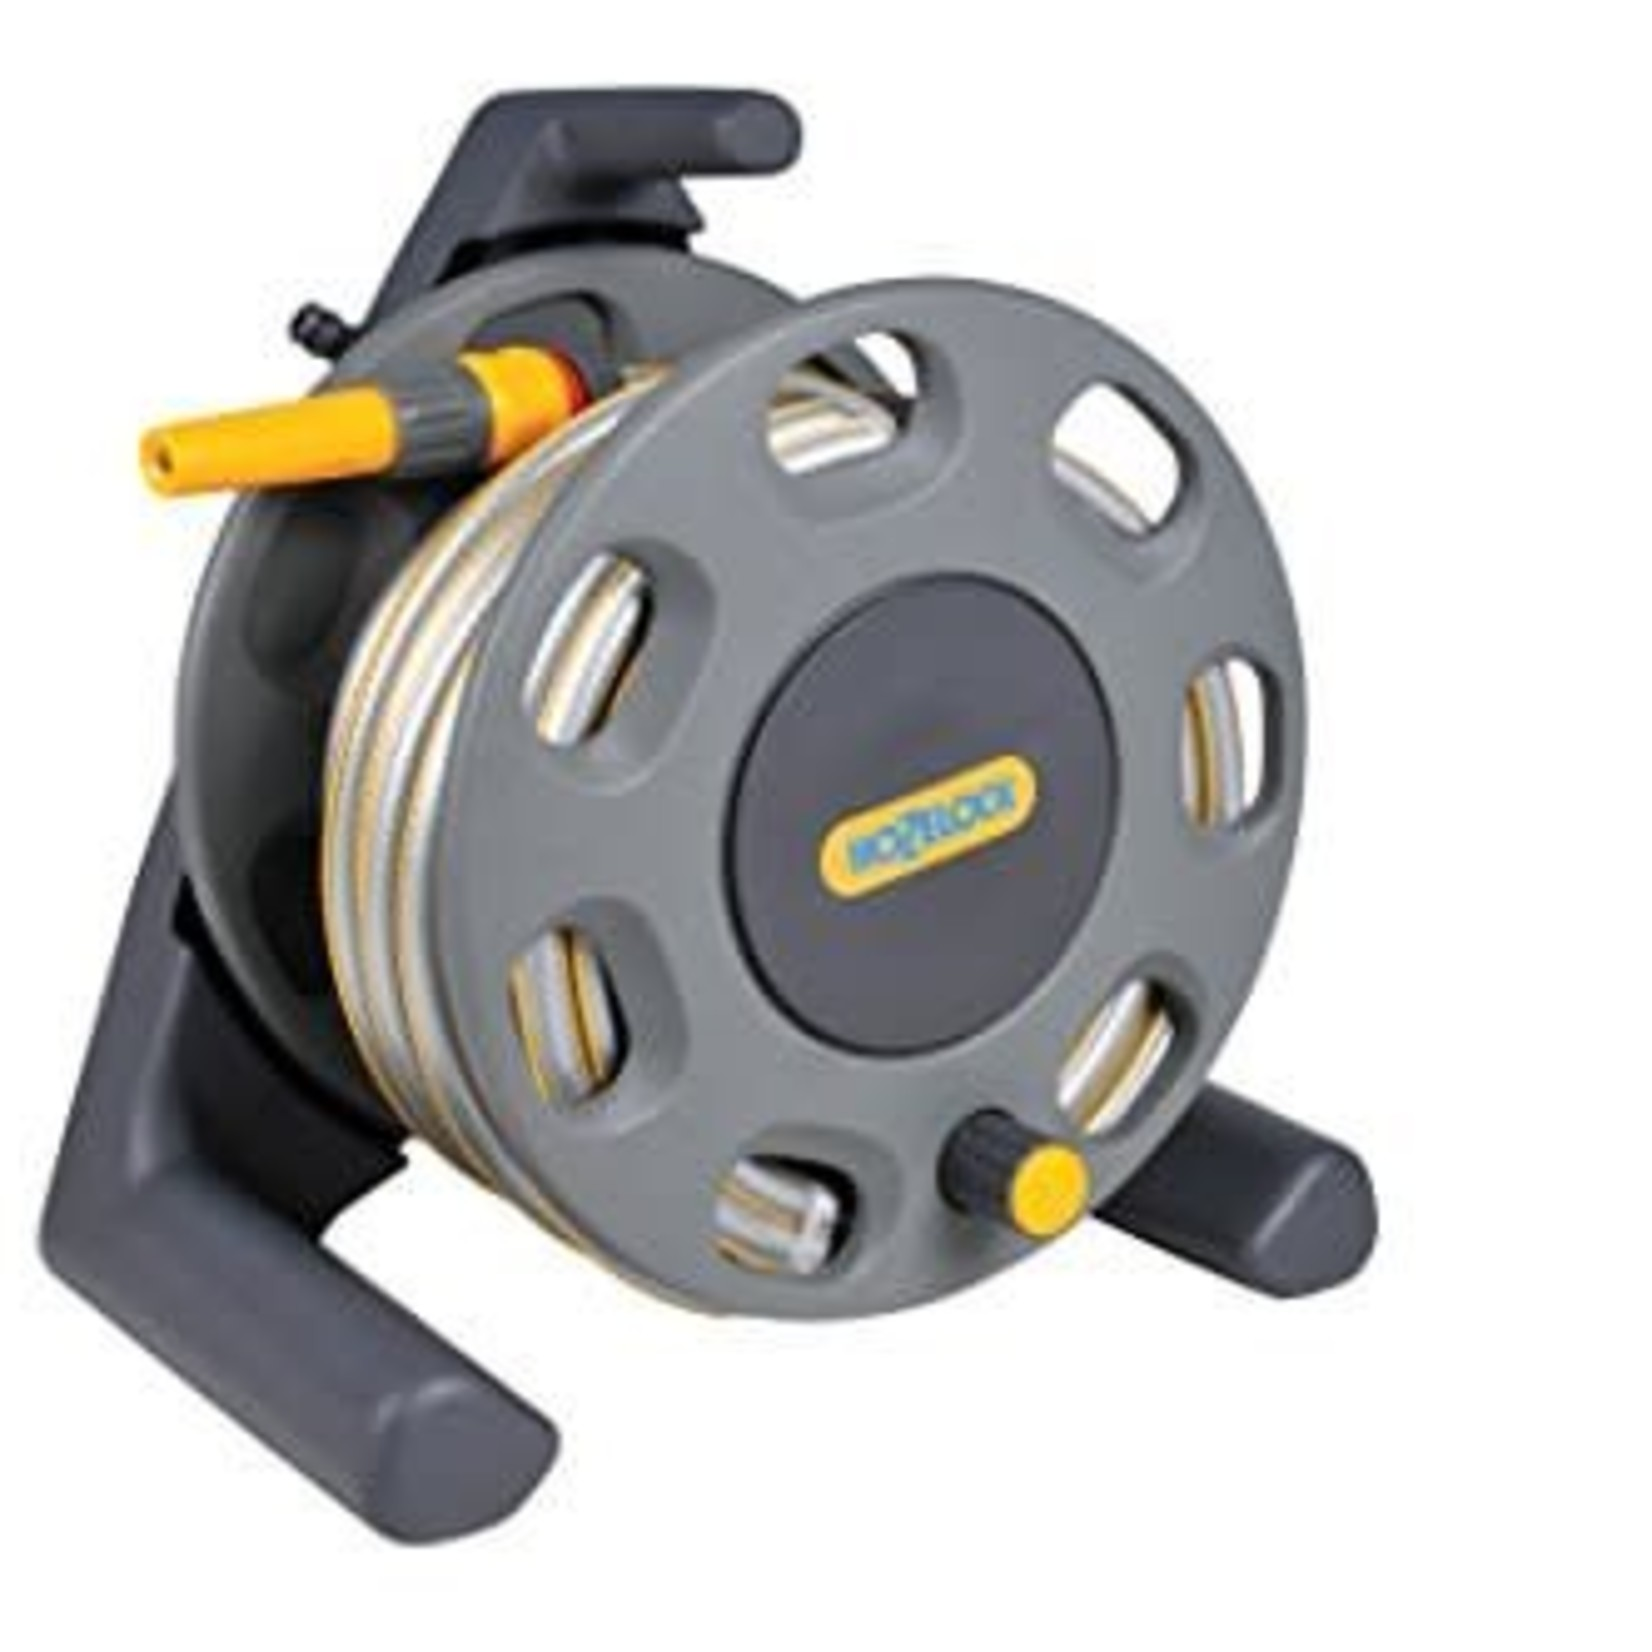 Hozelock 2412 HOZELOCK FREE STANDING 25M HOSE REEL AND HOSE WITH STARTER FITTINGS